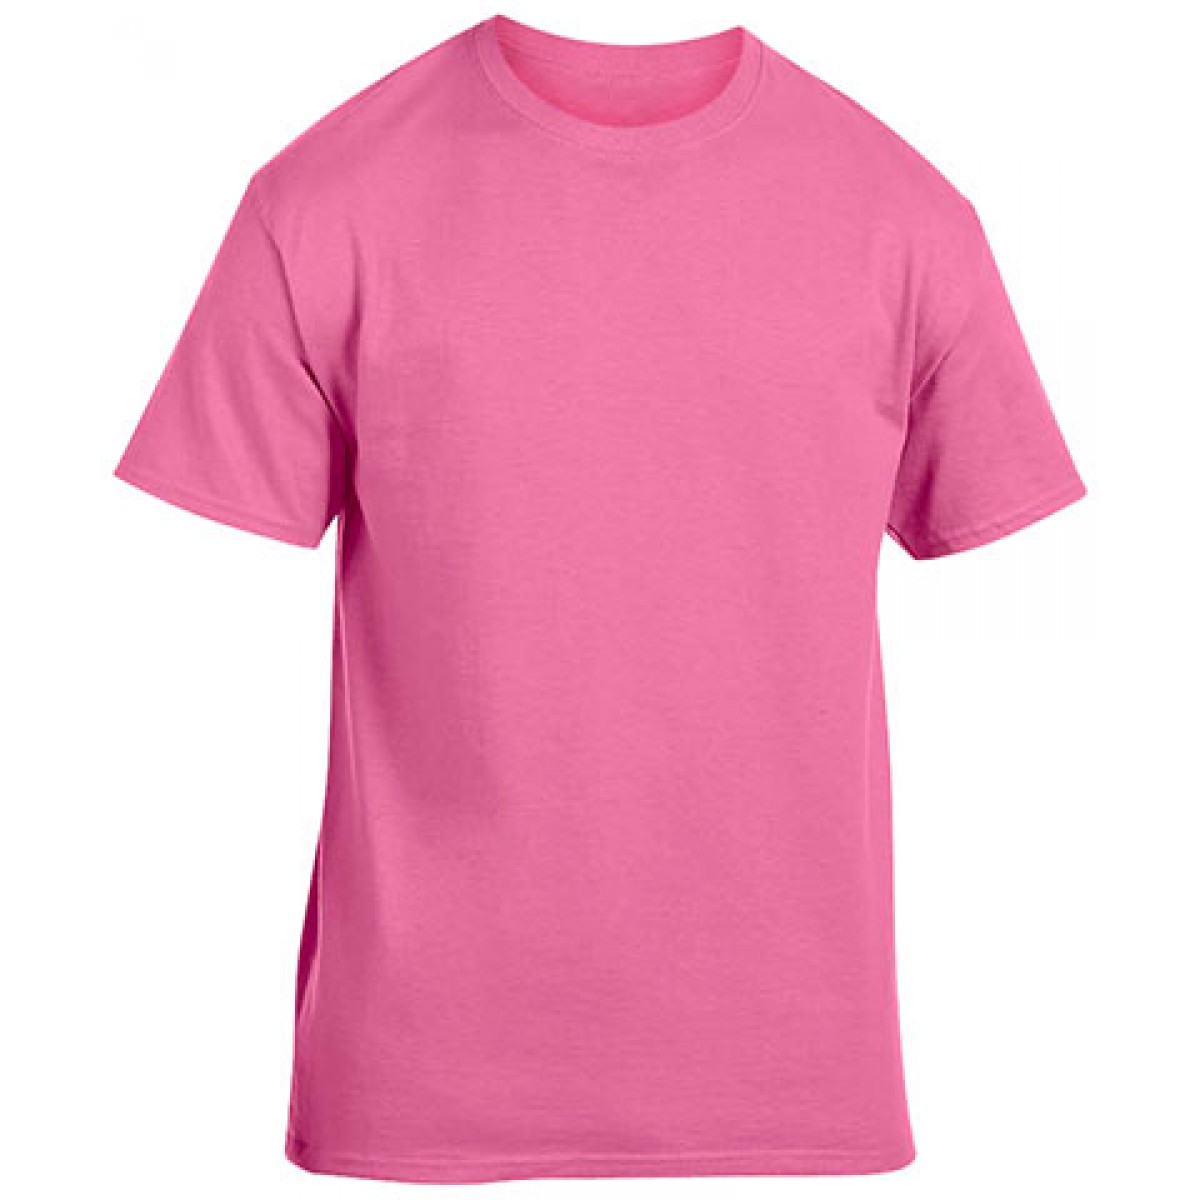 Heavy Cotton Activewear T-Shirt-Safety Pink-M